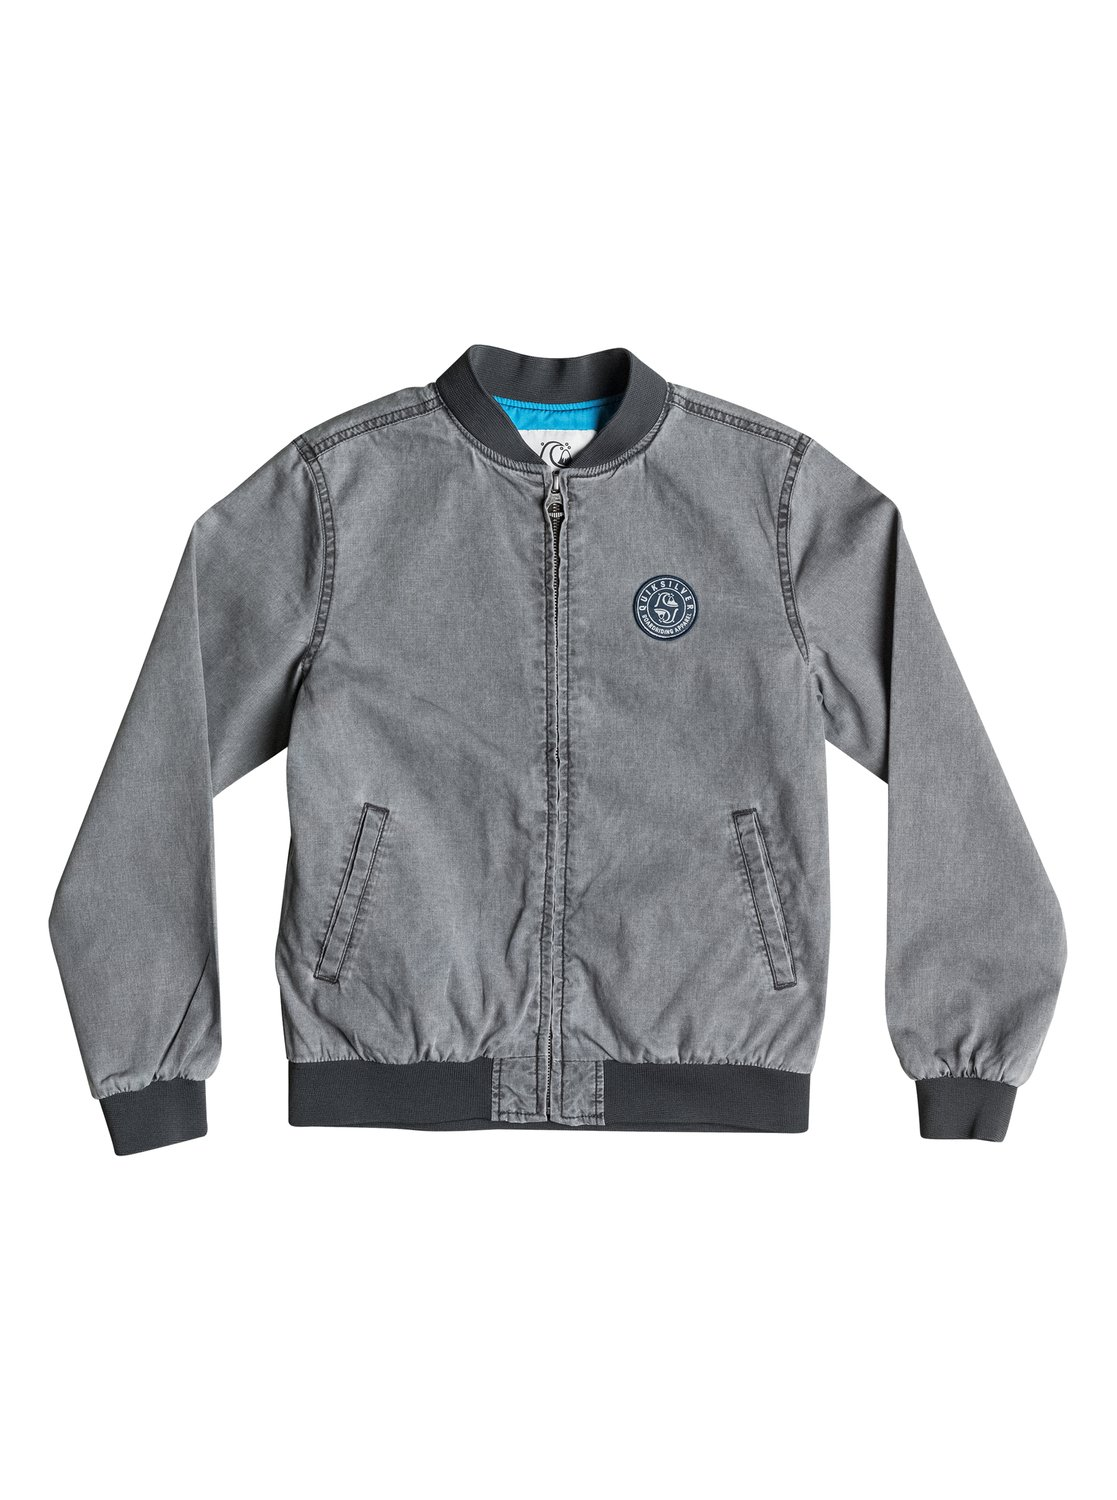 Boy's Hidden Wonders Jacket